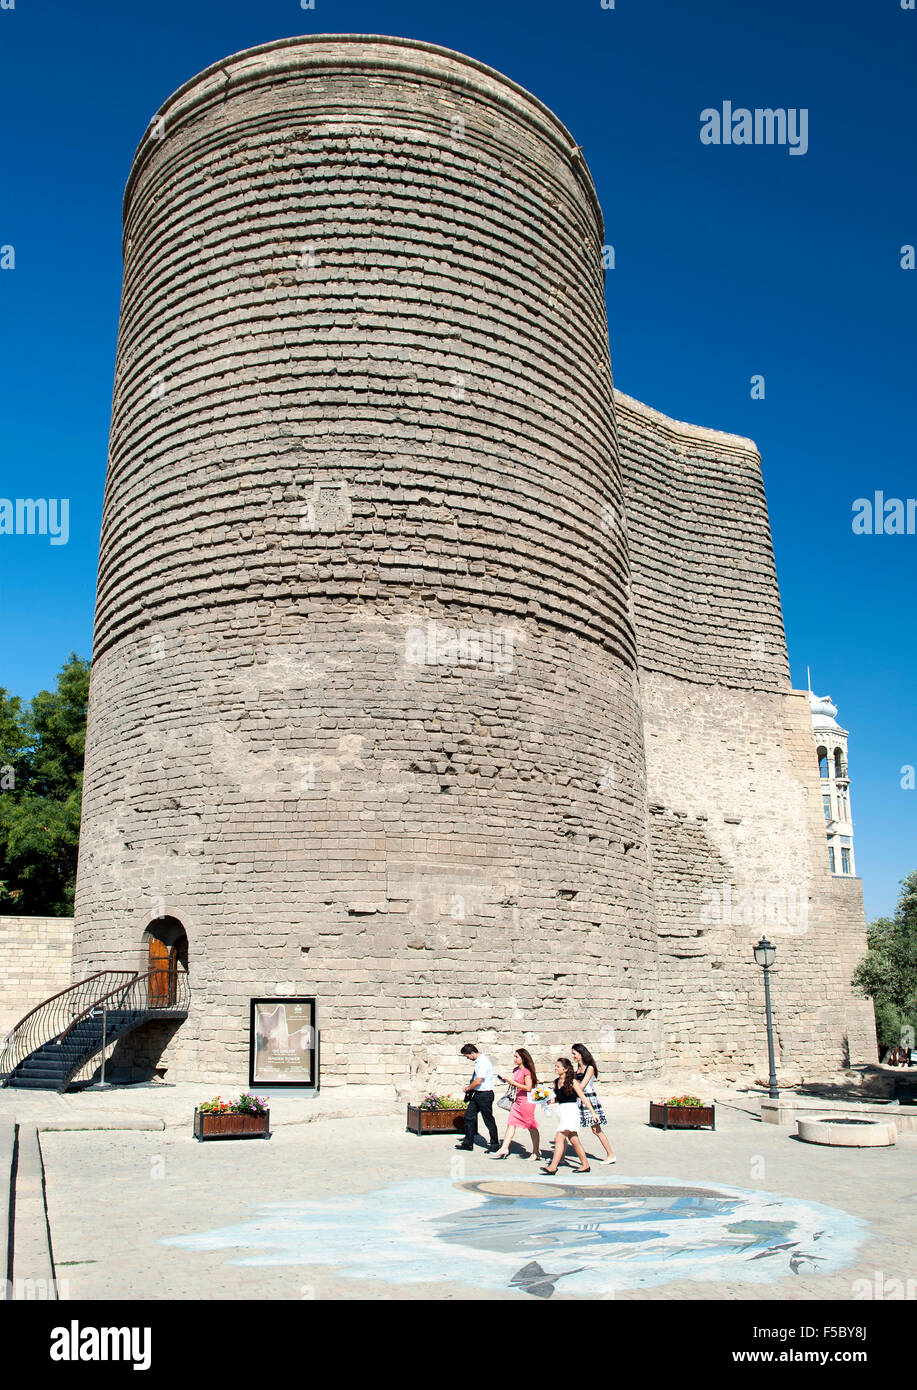 Maiden Tower in the old town of Baku, the capital of Azerbaijan. - Stock Image